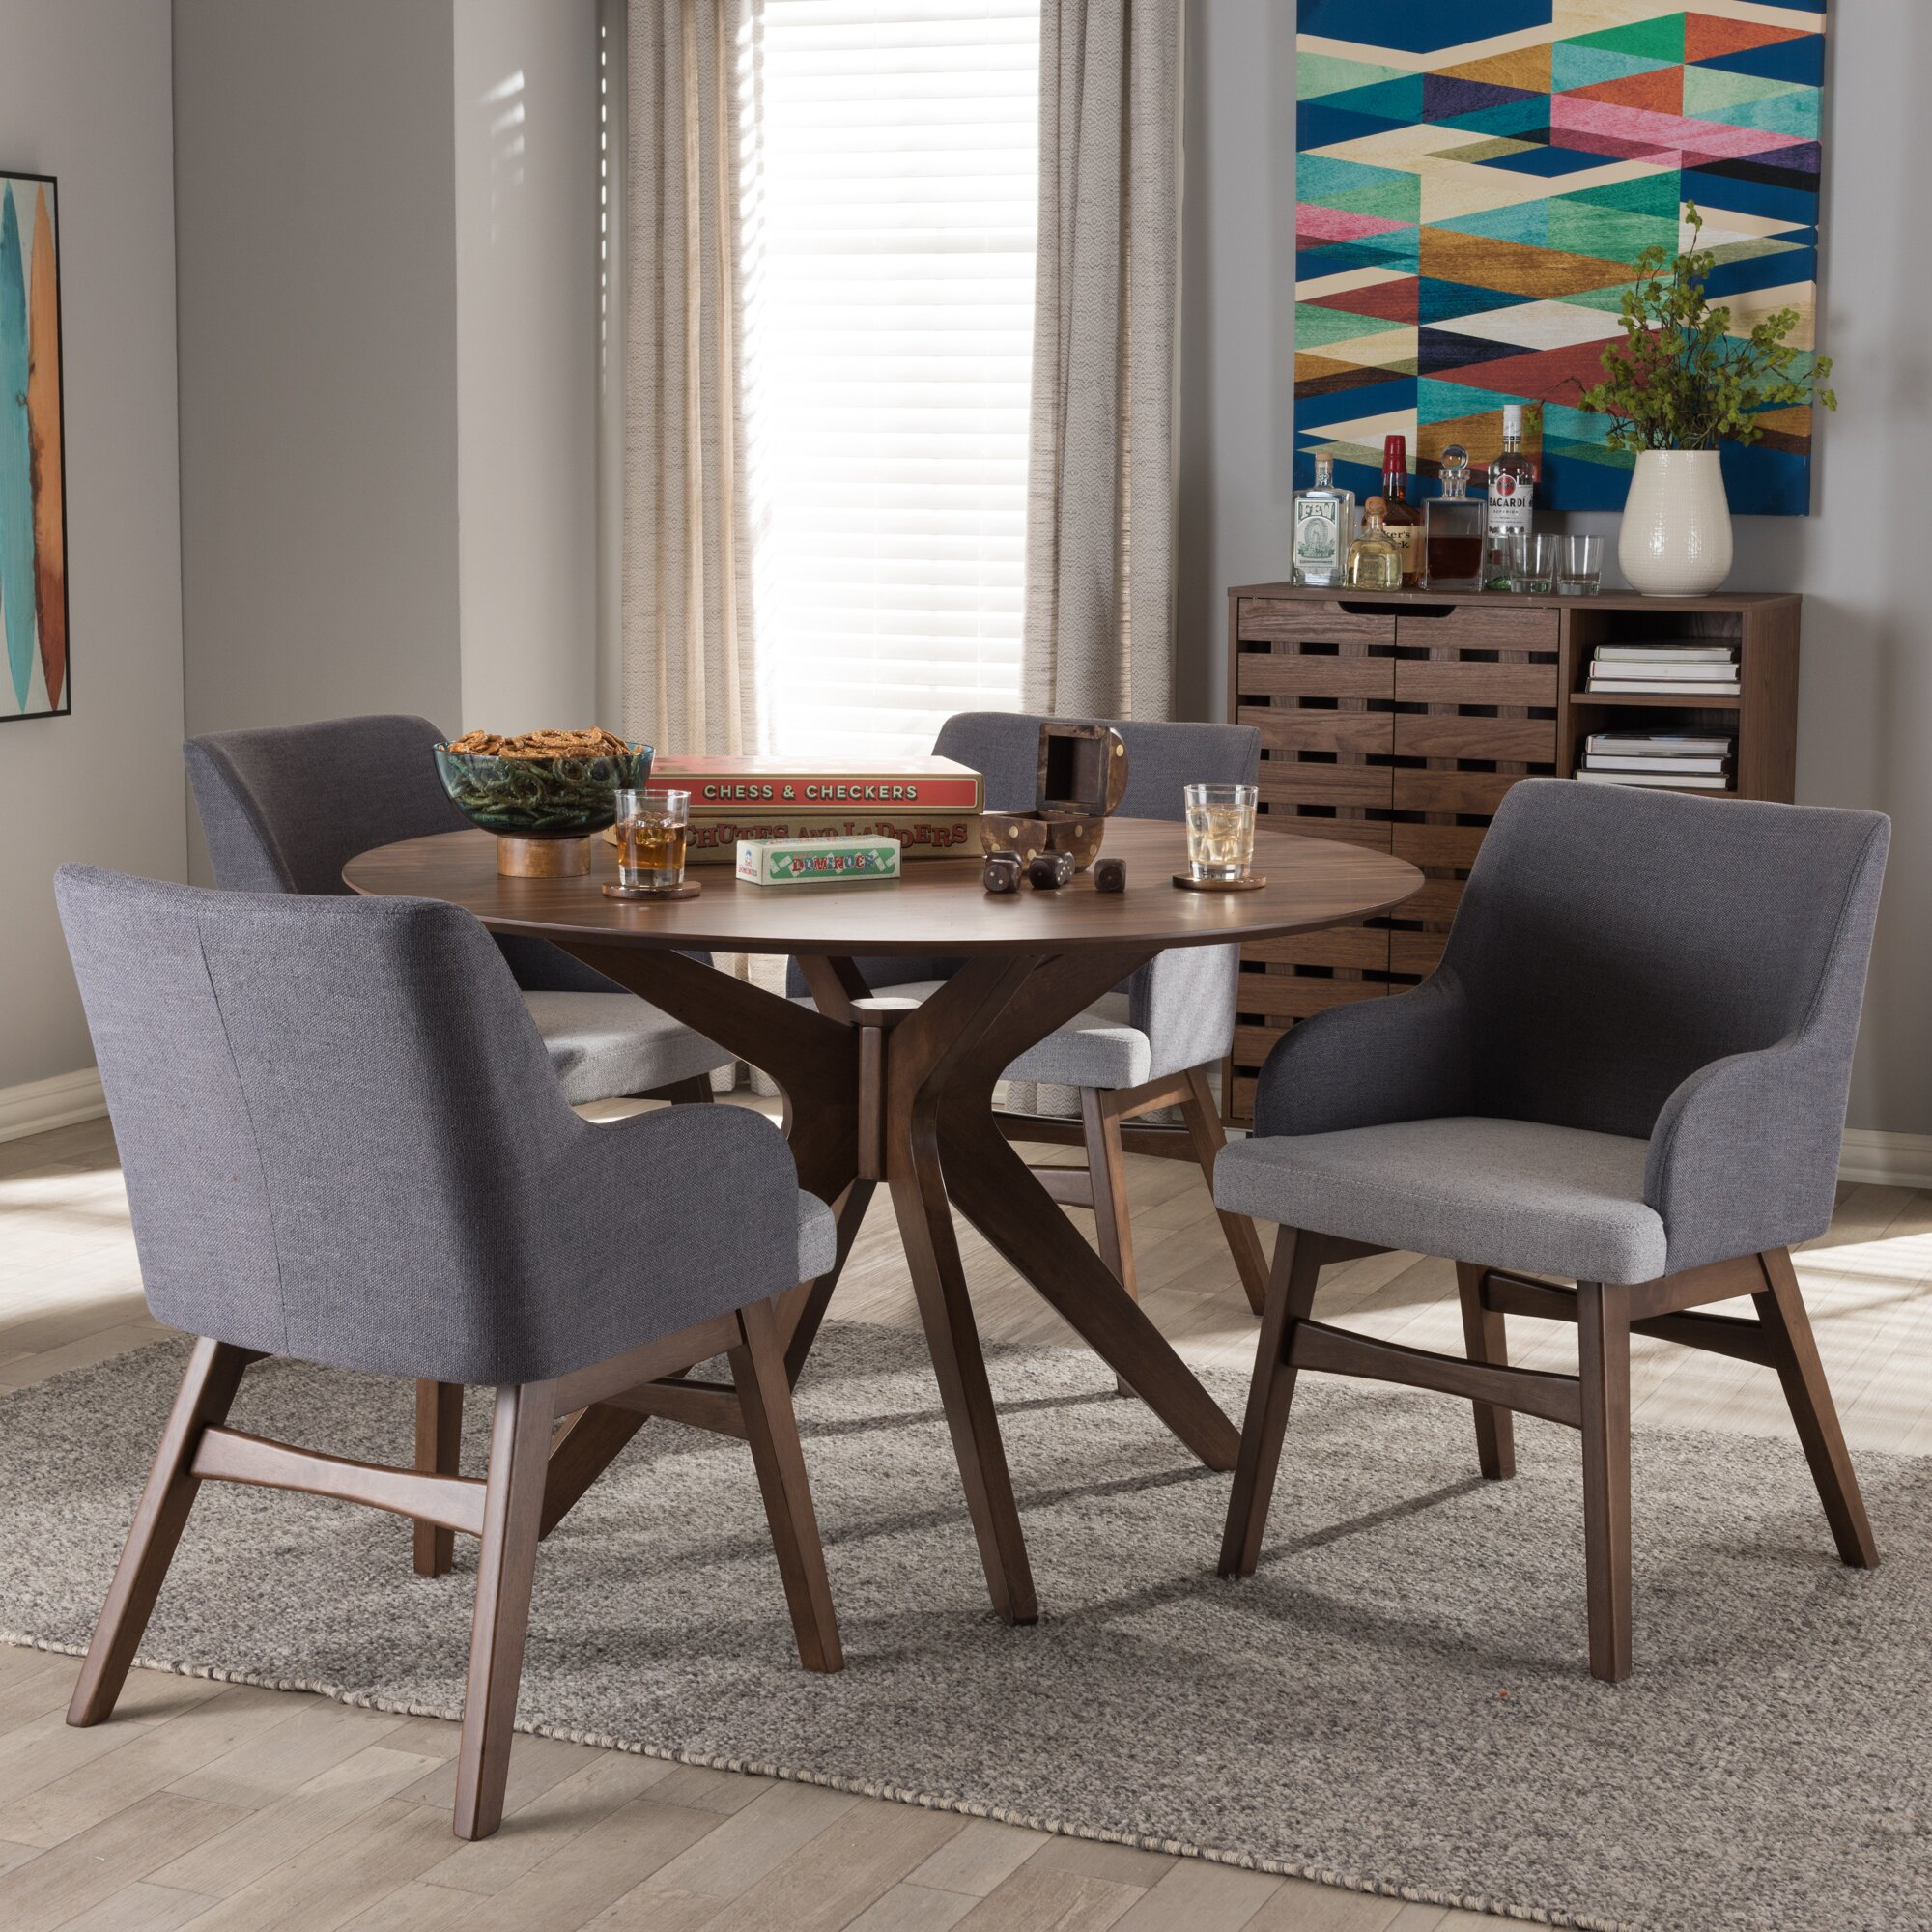 Monte MidCentury Modern Wood Round  Piece Dining Set  Reviews - Mid century modern dining room table